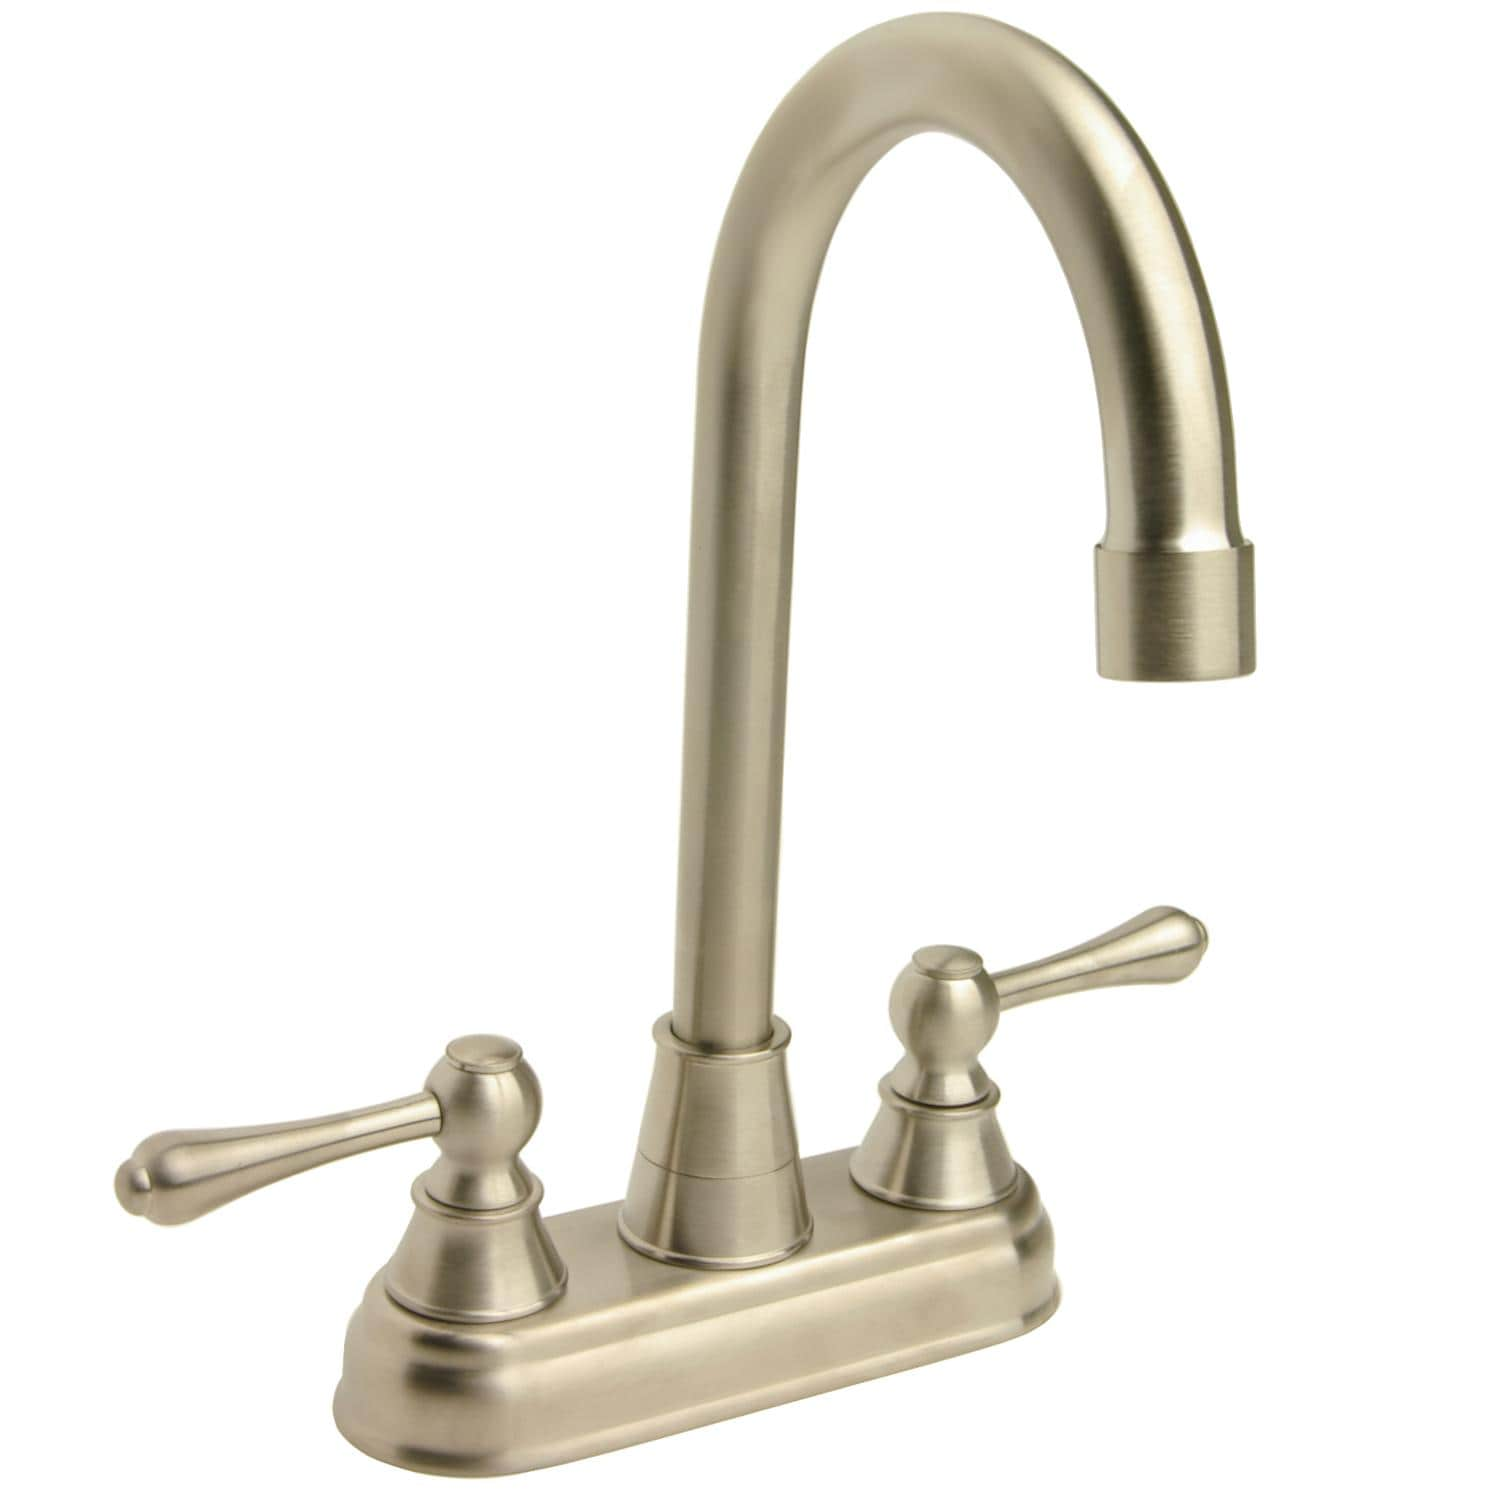 High arc Brushed Nickel Bar Faucet Overstock